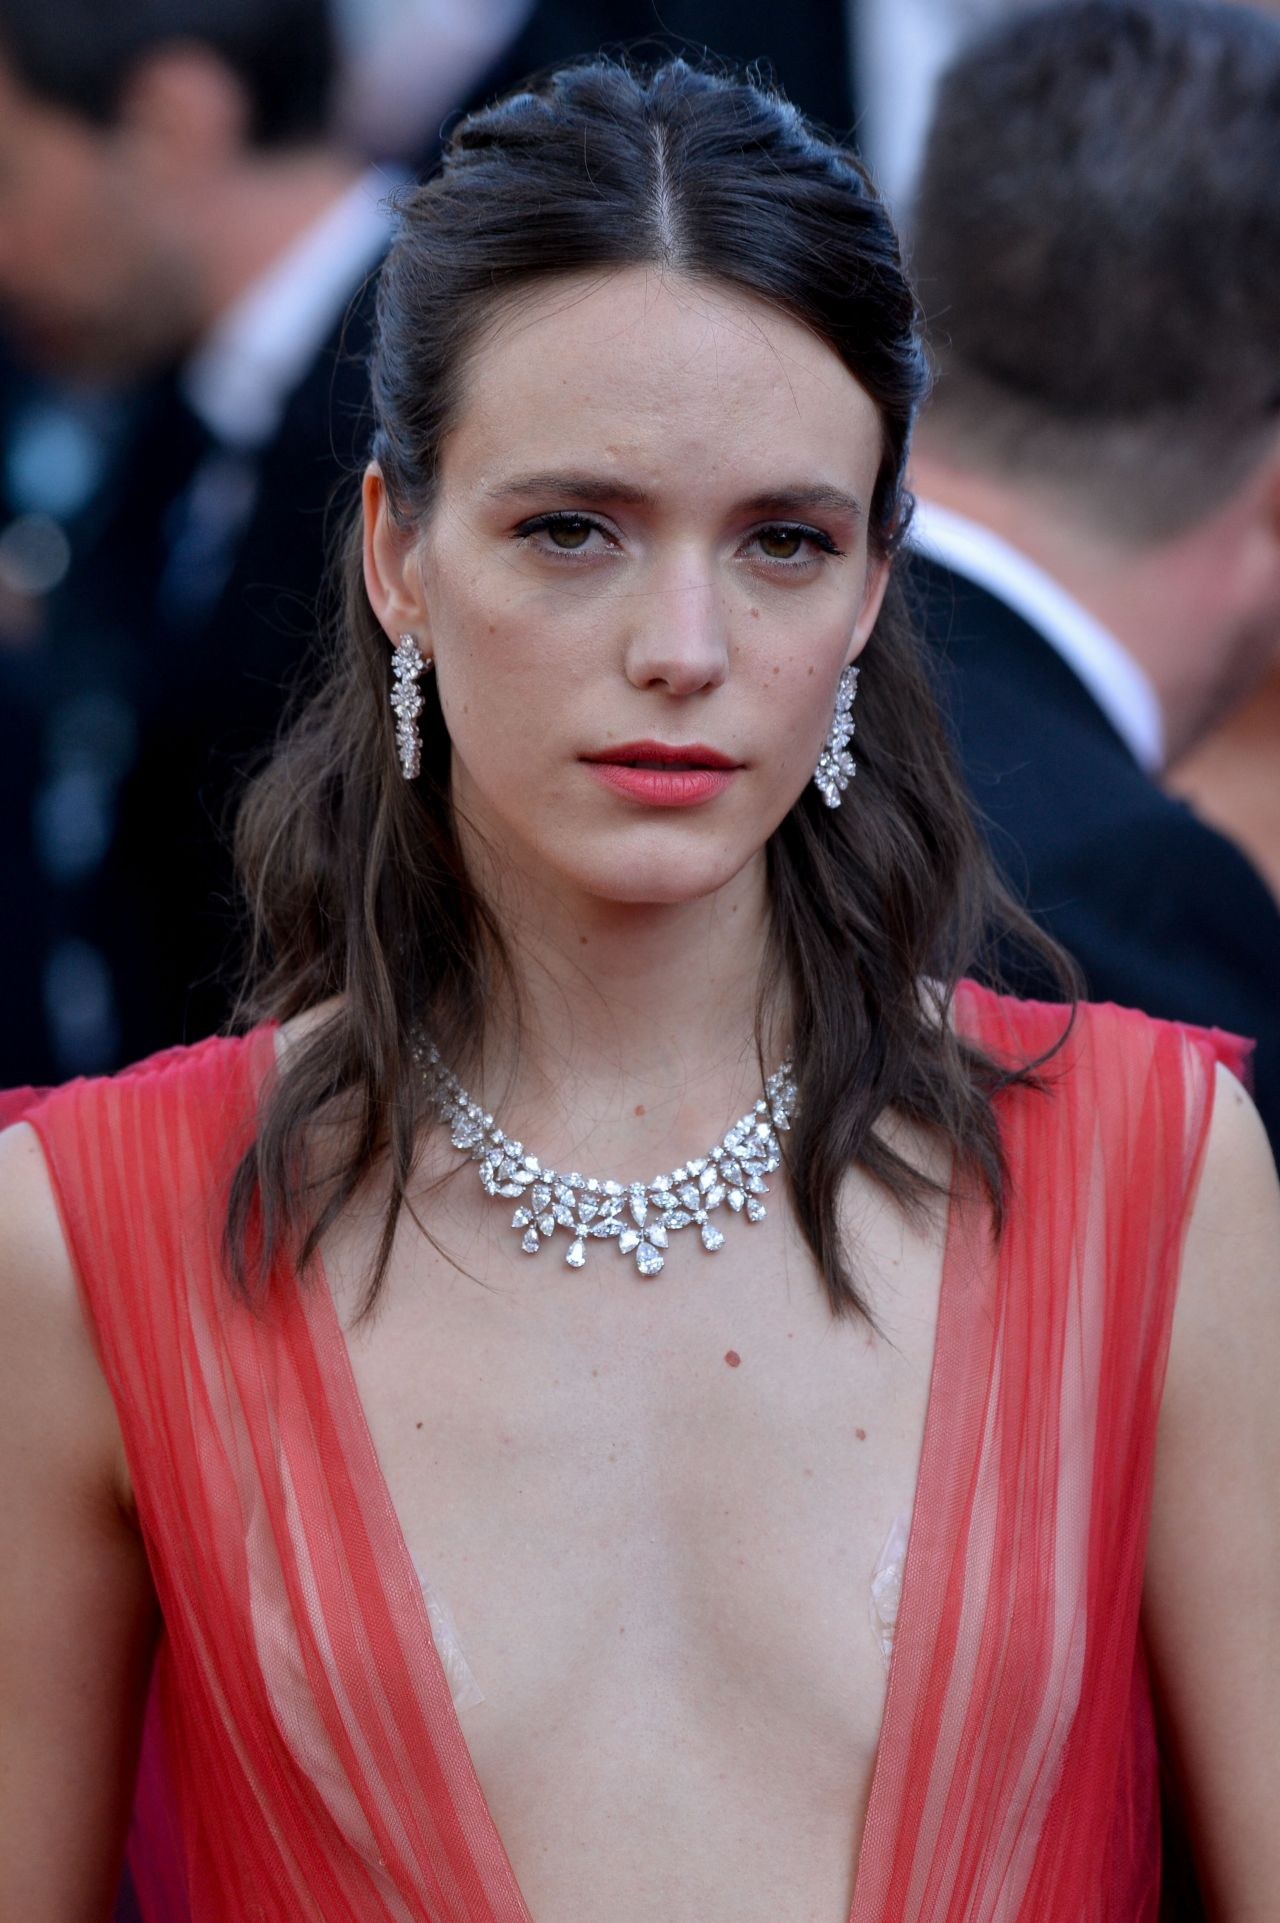 stacy martin biographystacy martin instagram, stacy martin wiki, stacy martin очки, stacy martin style, stacy martin venice, stacy martin imdb, stacy martin insta, stacy martin casanova last love, stacy martin interview, stacy martin biography, stacy martin 2019, stacy martin sunglasses, stacy martin height weight, stacy martin instagram official, stacy martin gif hunt, stacy martin vogue, stacy martin, stacy martin facebook, stacy martin daniel blumberg, stacy martin cannes